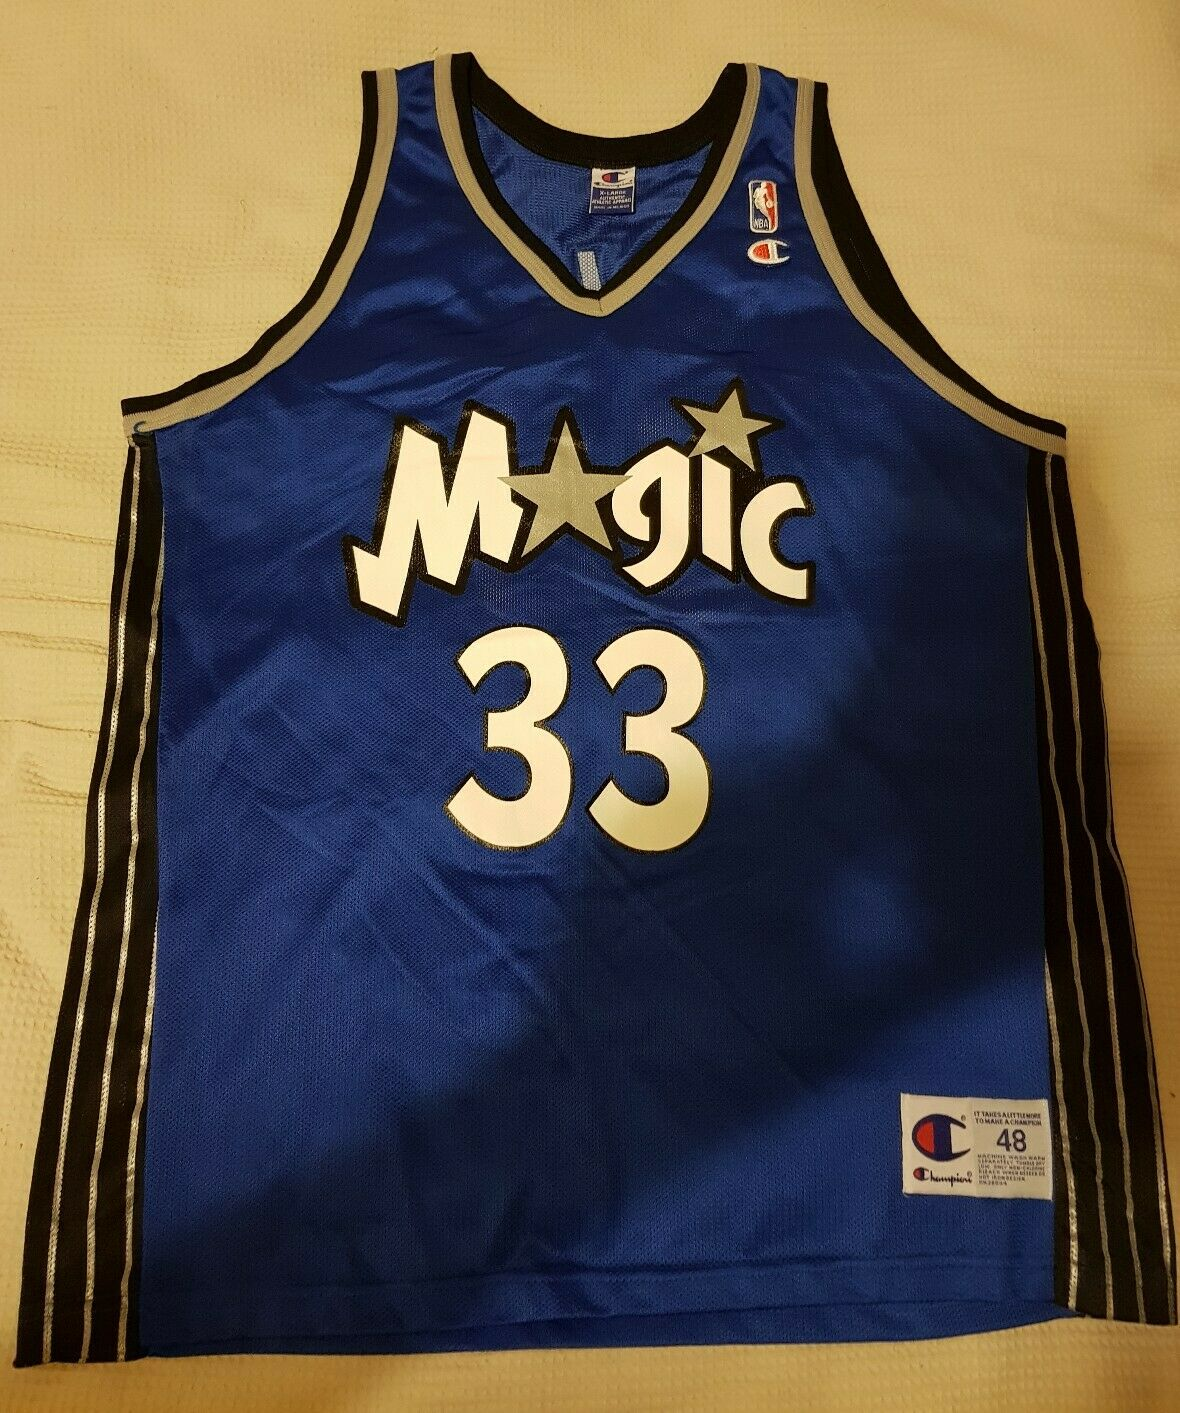 BNWOT Champion Orlando Magic Hill NBA jersey 2000 01 48 XL Outlaw Armstrong